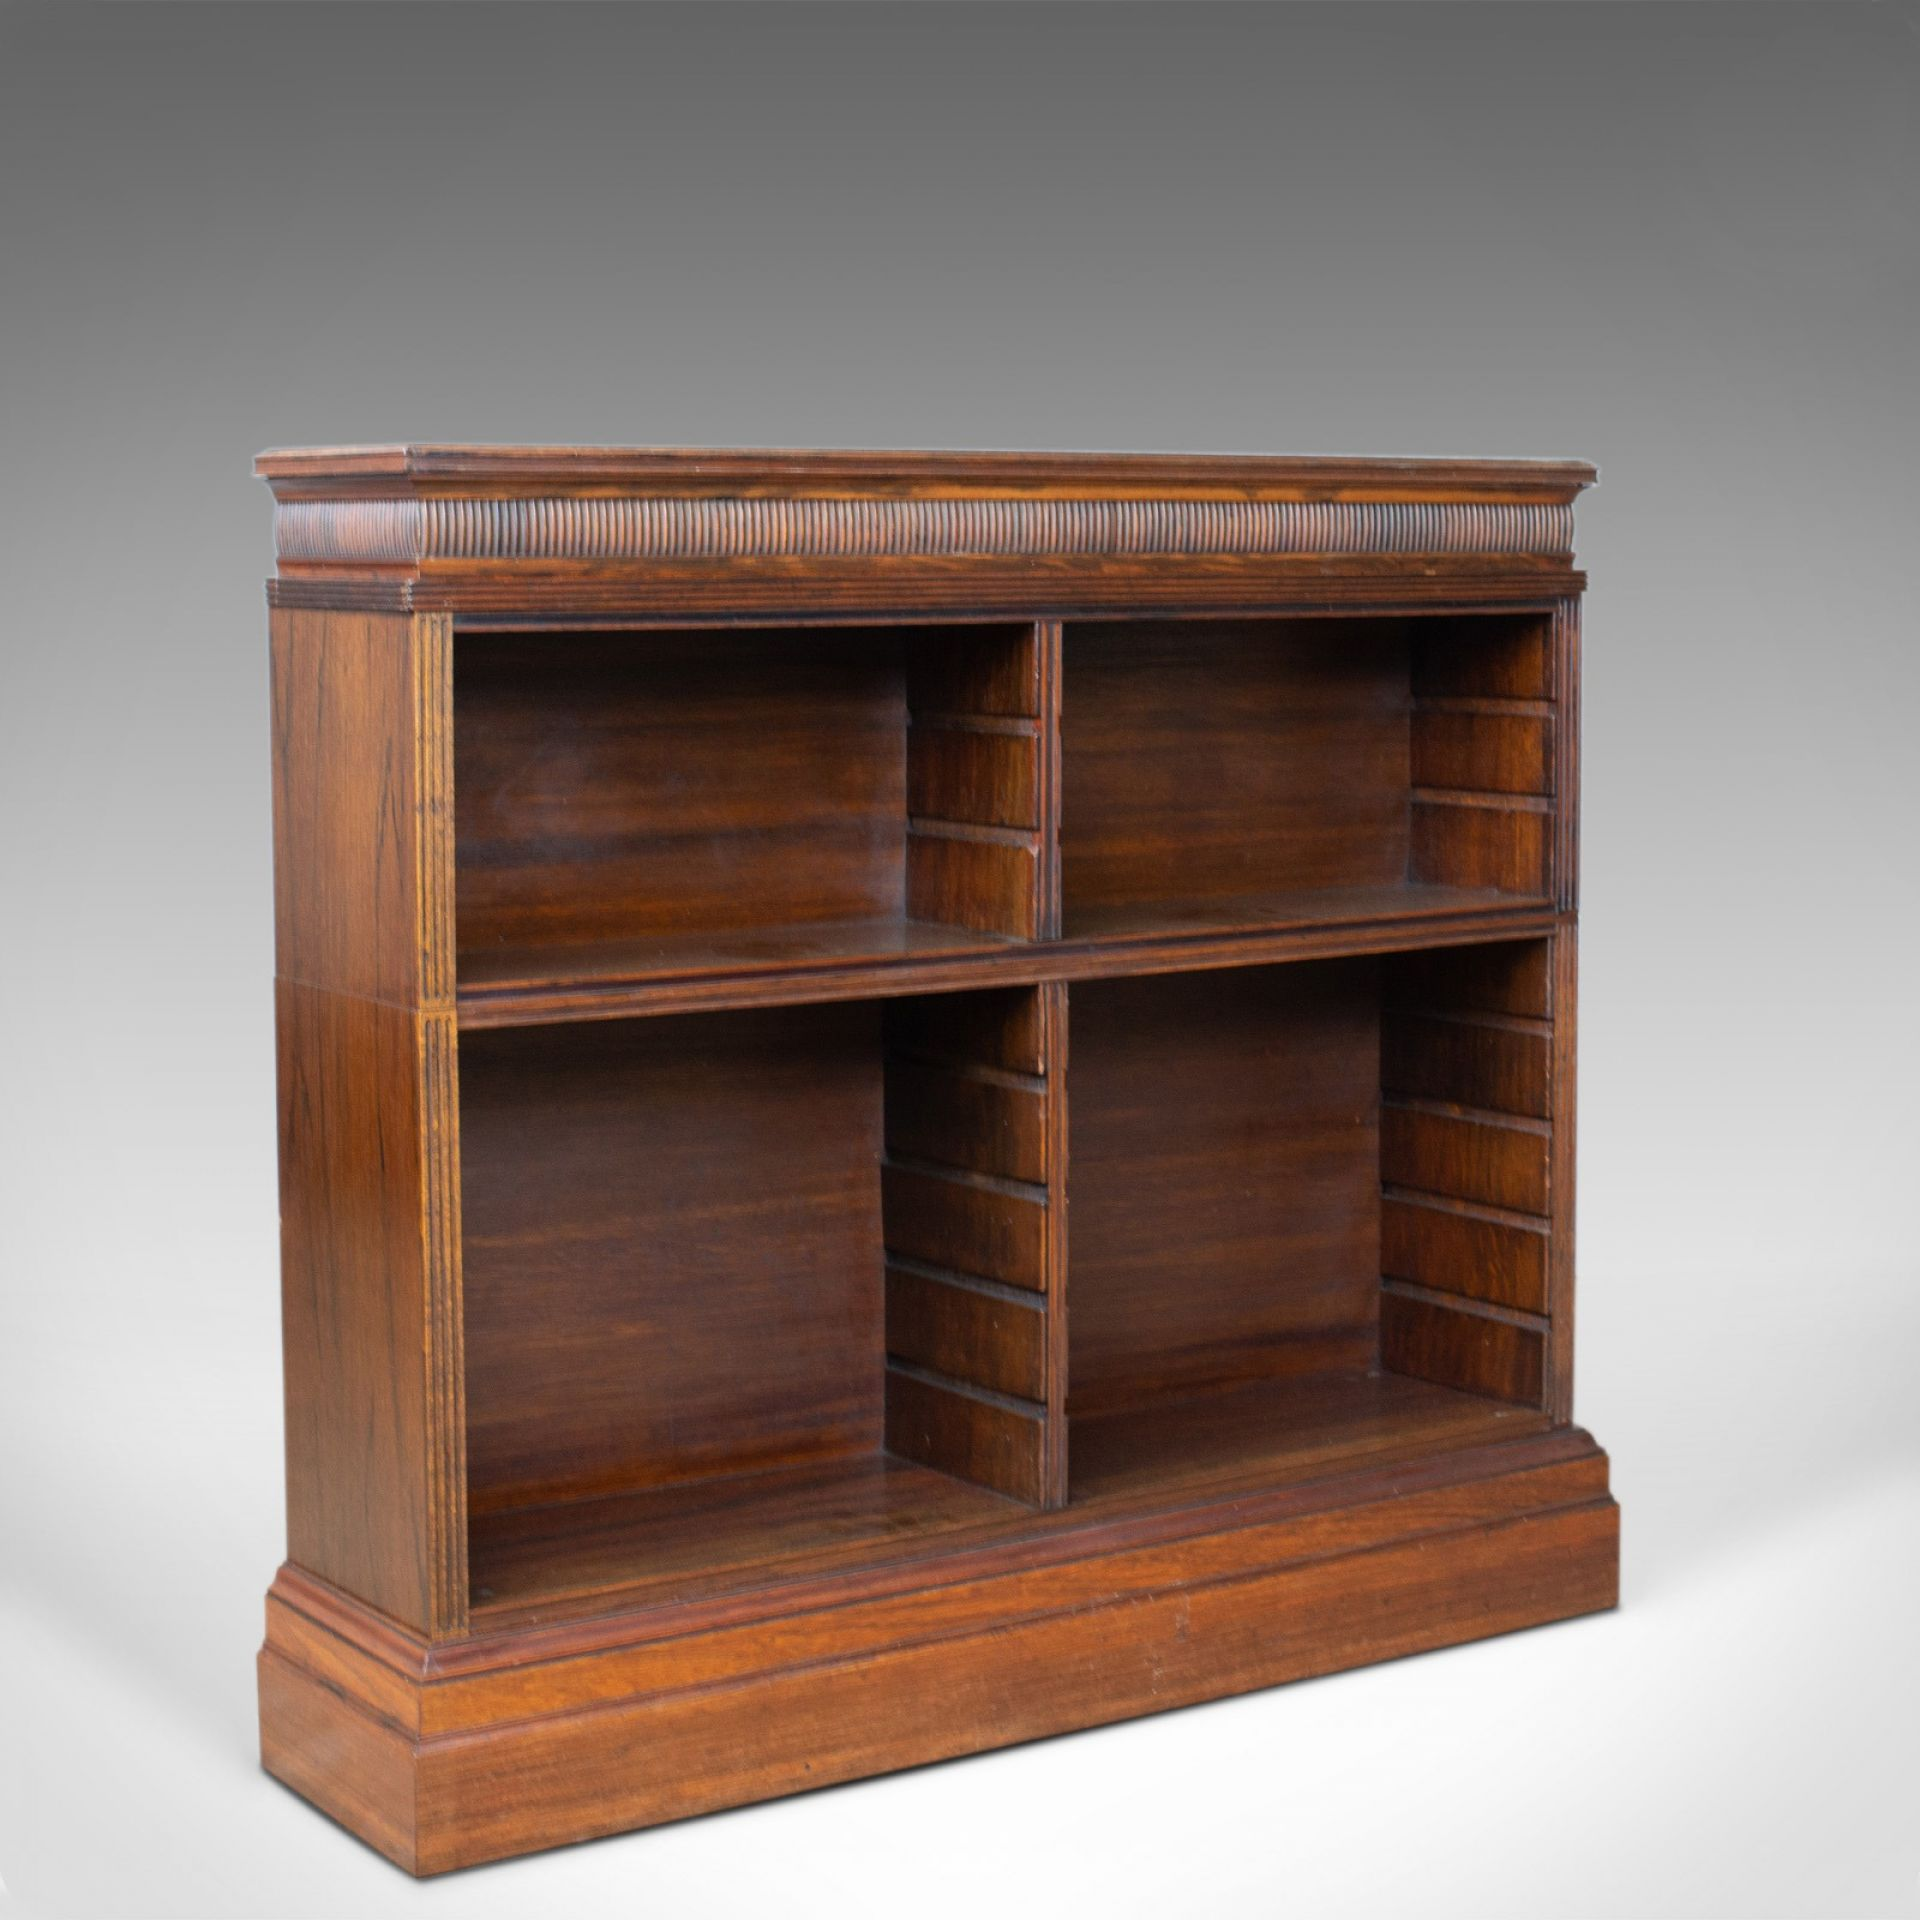 Antique Open Bookcase, English, Regency and Later, Bookshelves, Rosewood, c.1830